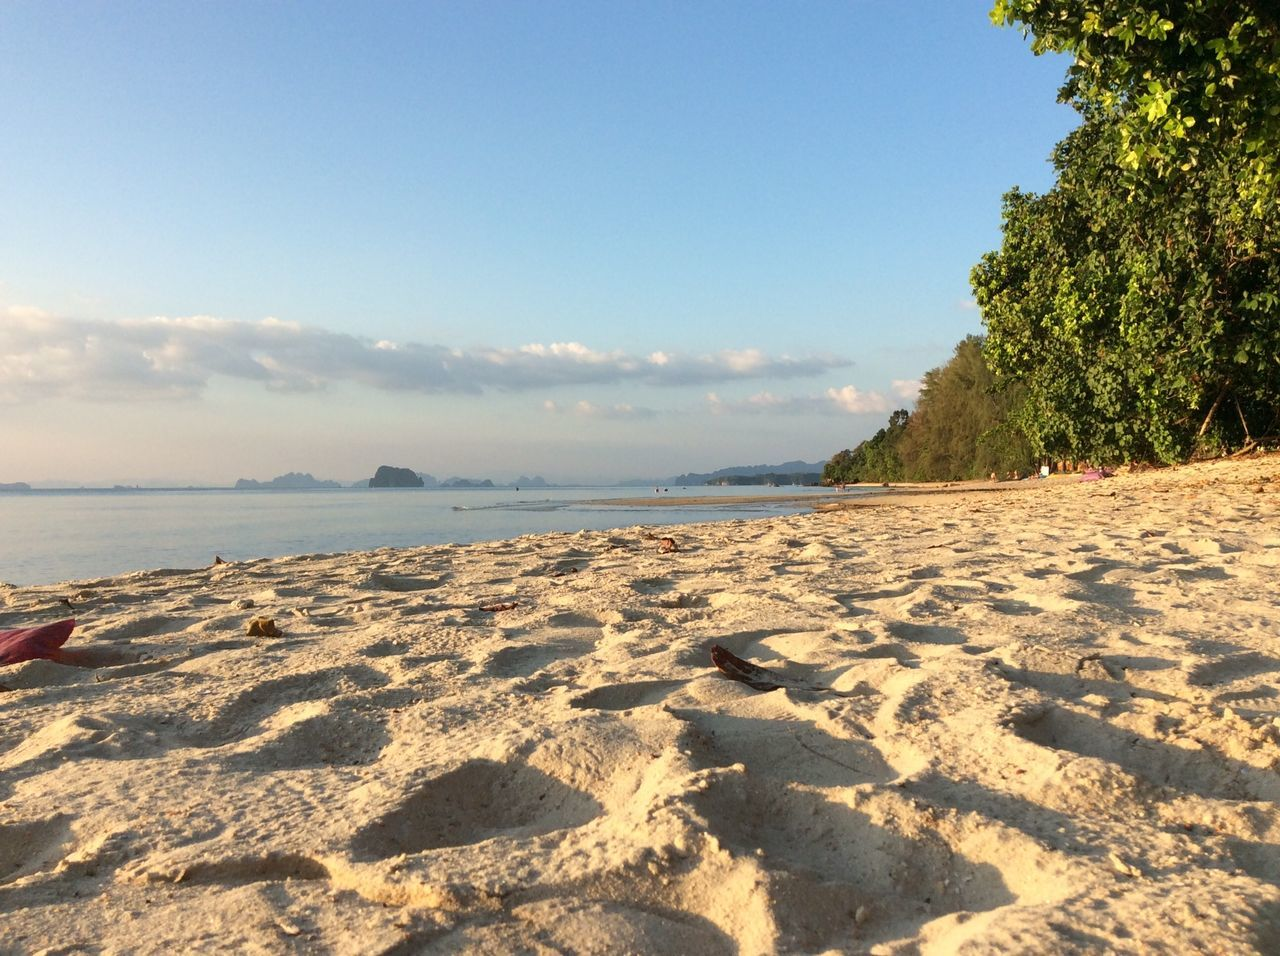 on the beach Abroad Abroad Beach Beach Holiday Beach Vacation Exotic Footprints In The Sand Krabi Outdoors Paradise Paradise Beach Relaxation Relaxing Ripples Ripples In The Sand Sand Sand Patterns Shadow Shadows Shore Shore Line Shoreline Thailand Vacation Vacations